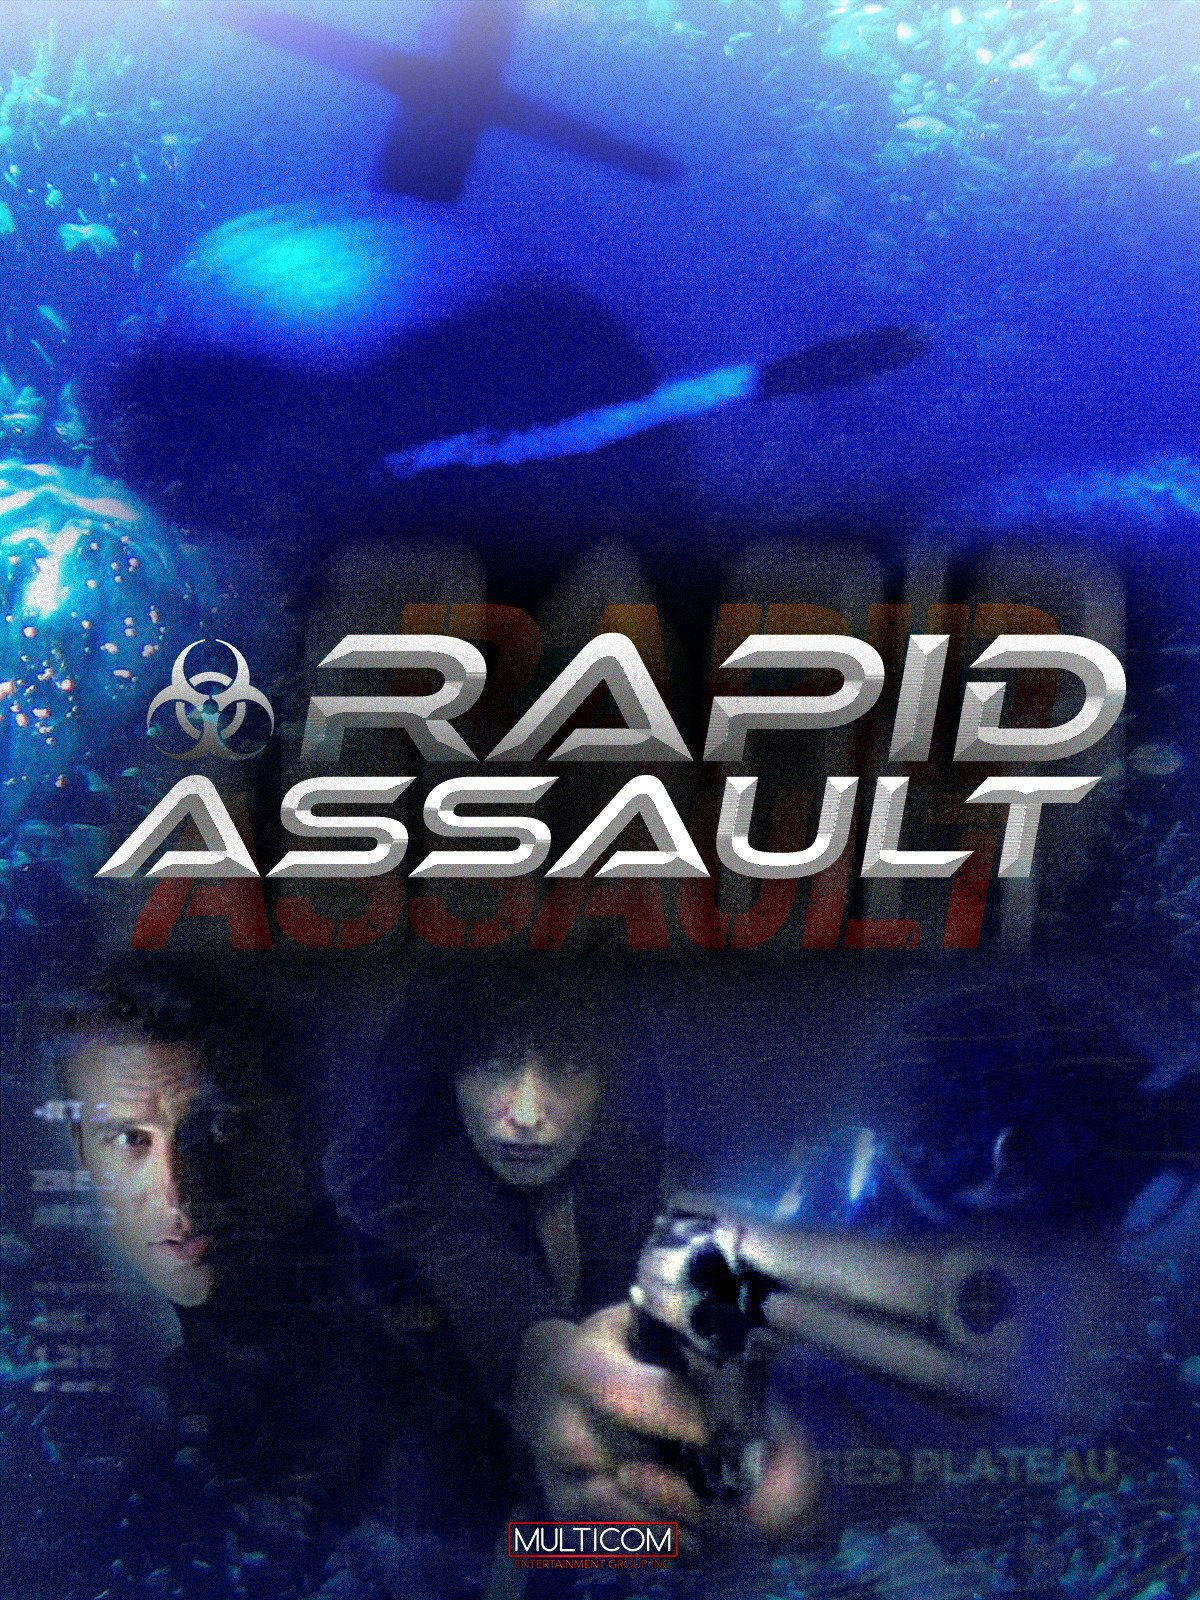 Amazon.com: Rapid Assault: Tim Abell, Jeff Rector, Lisa ...